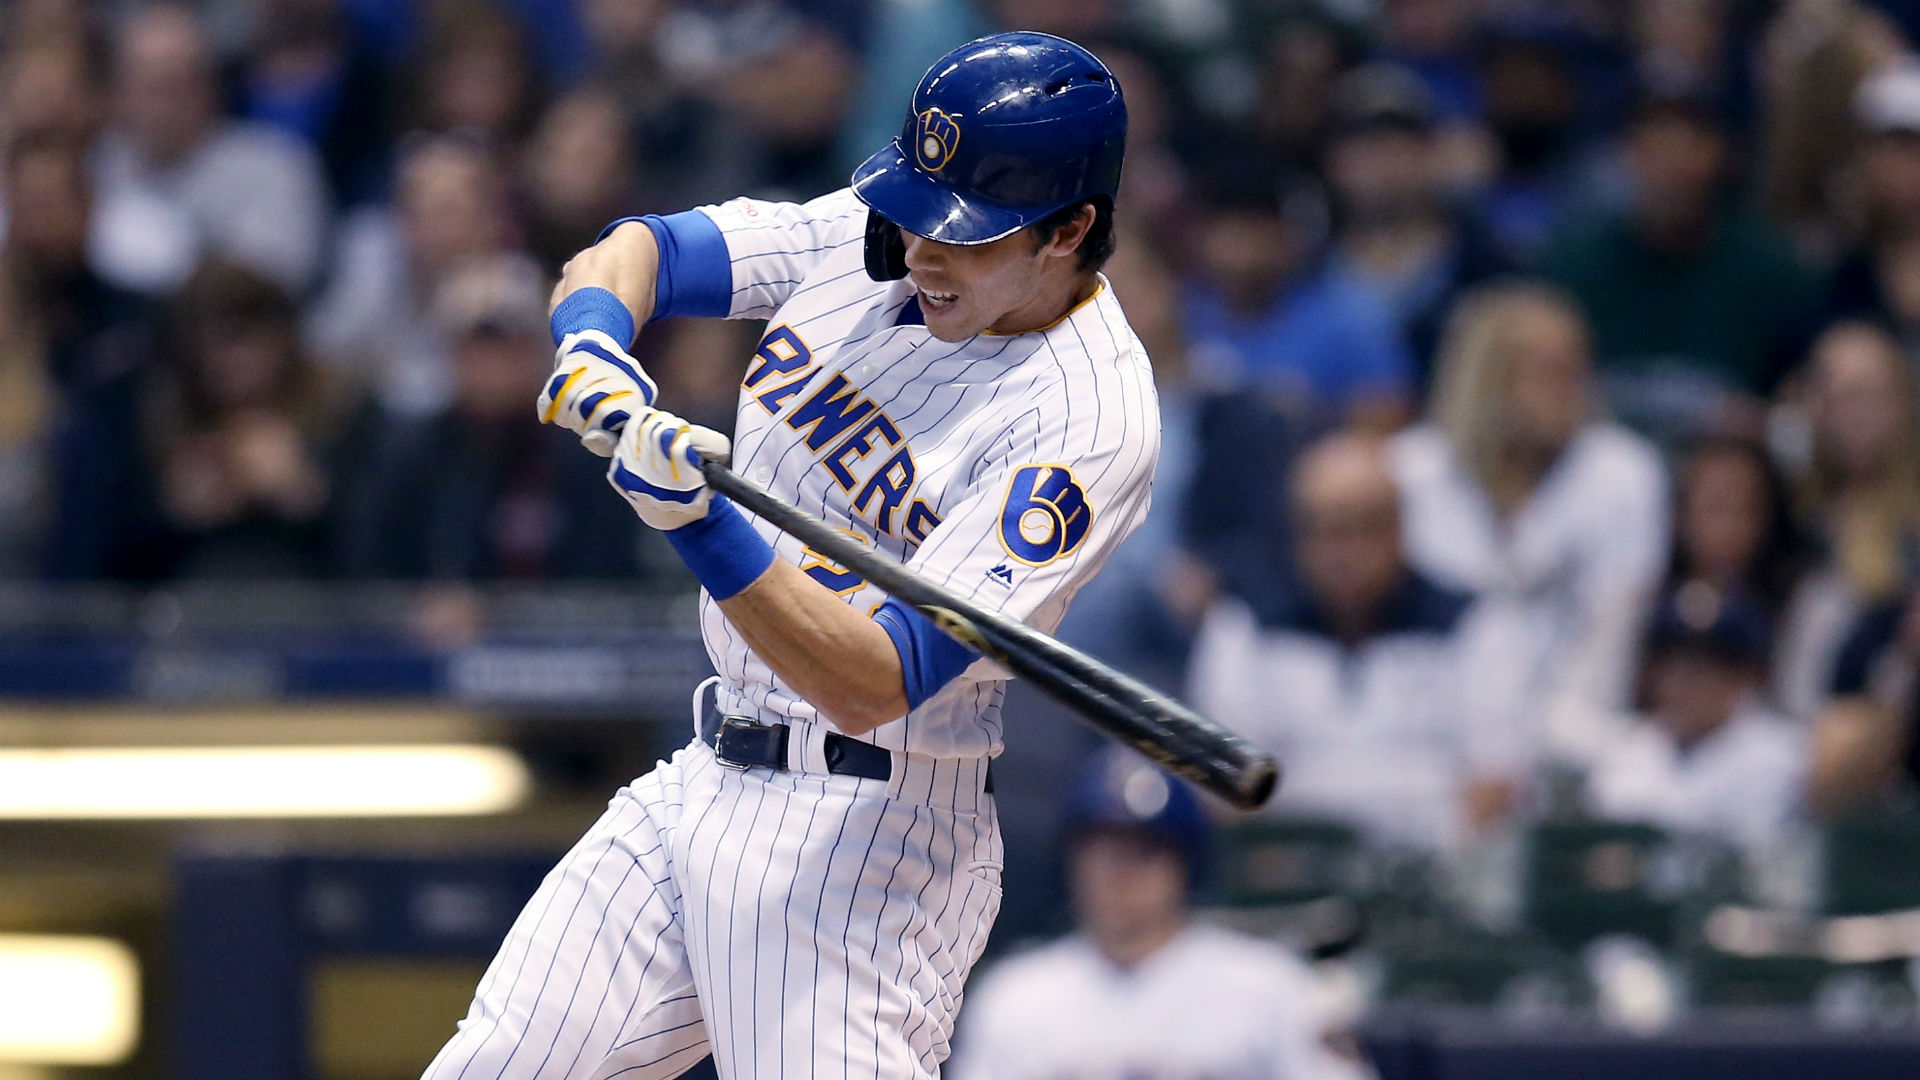 Christian Yelich breaks boat window during Home Run Derby practice, someone calls police (really)